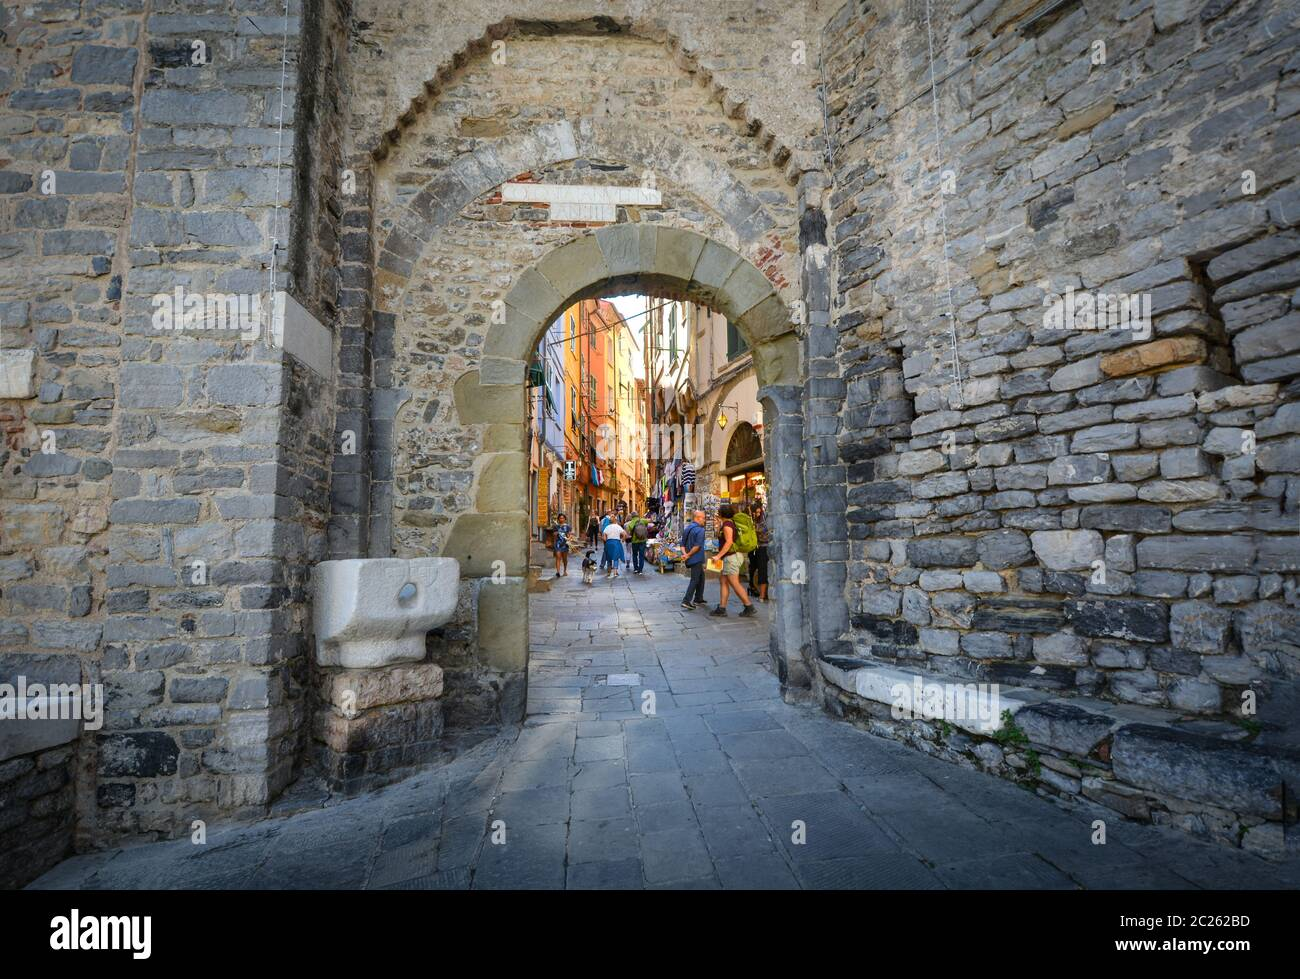 Tourists sight-see and shop inside the ancient town gate of the coastal village of Porto Venere, on the Ligurian coast of Italy. Stock Photo